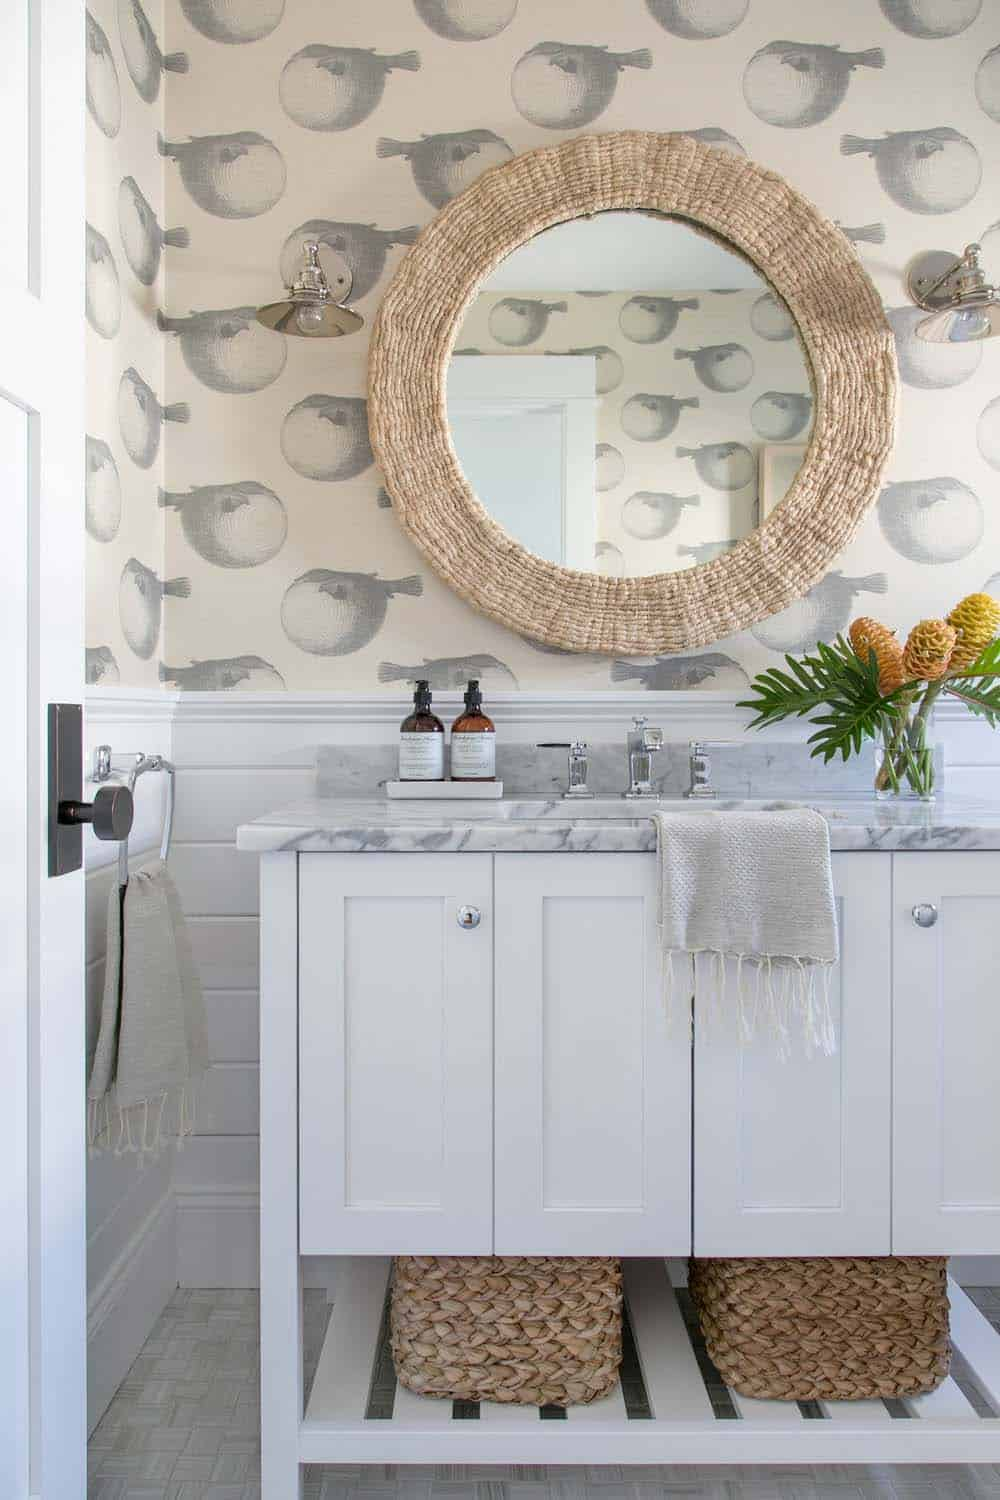 Coastal-Chic Beach Home-Chango Co-09-1 Kindesign